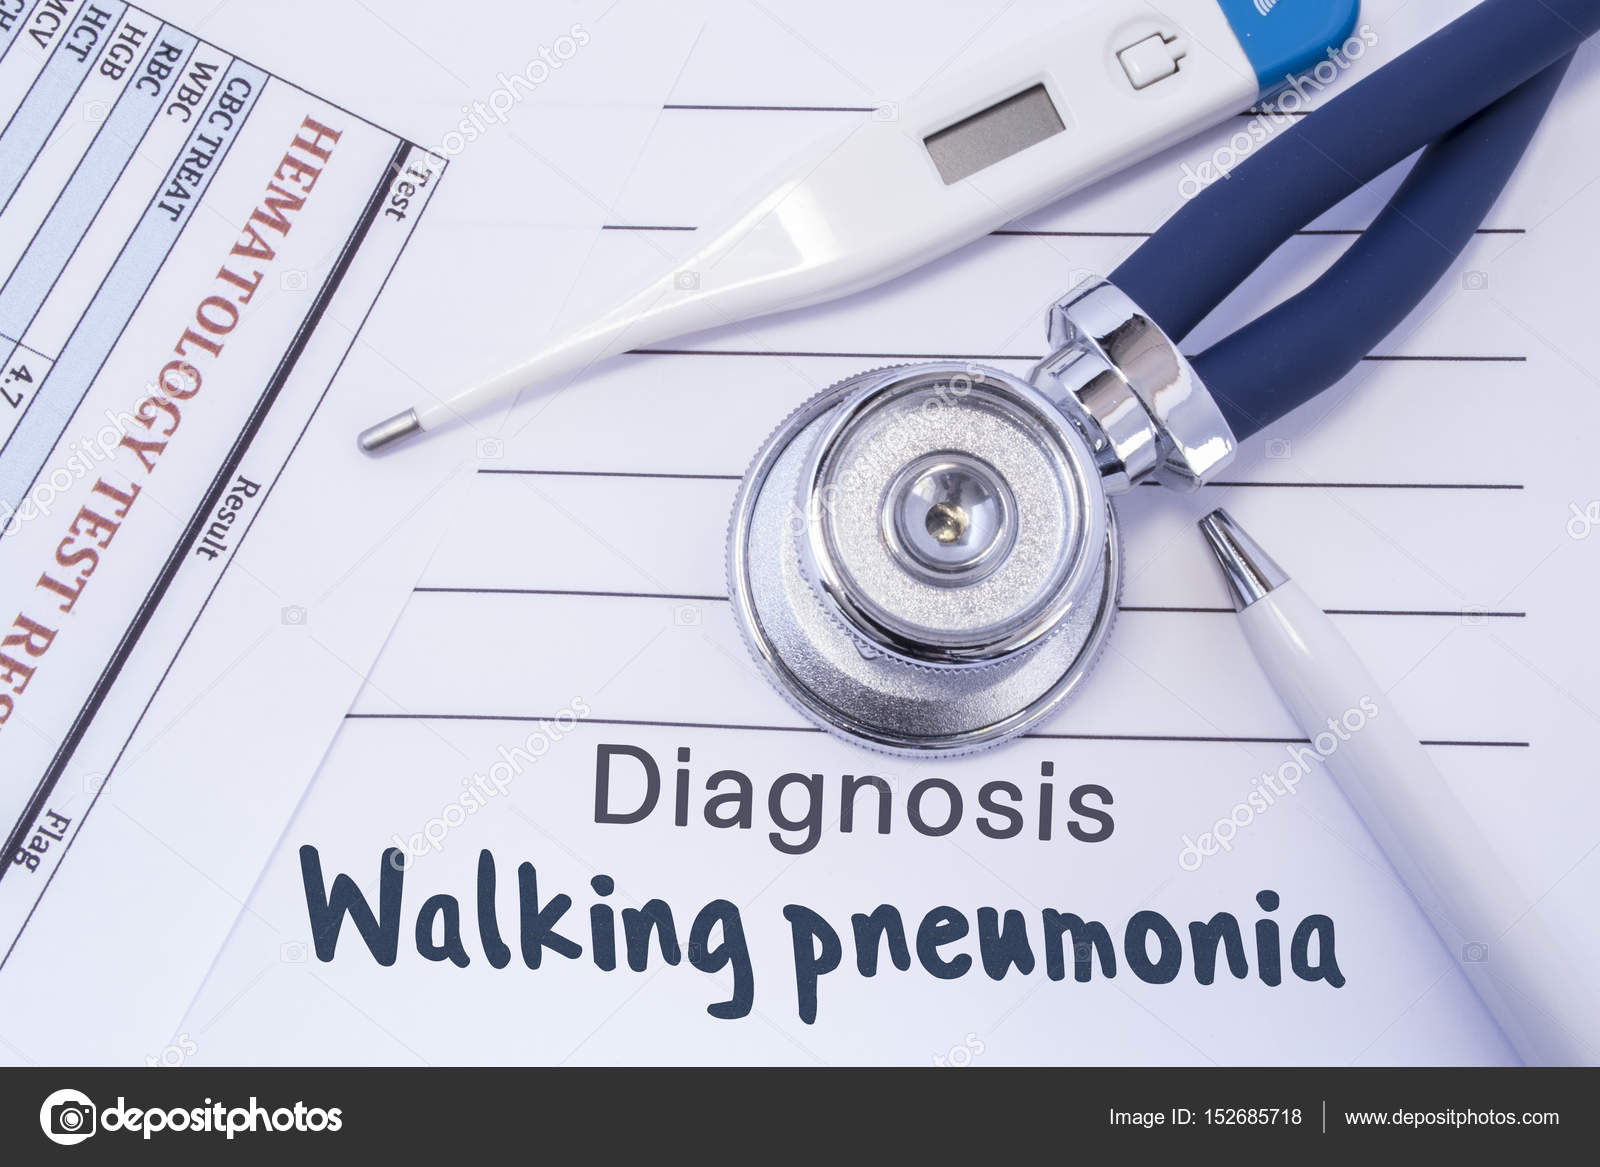 Diagnosis of walking pneumonia. Stethoscope, electronic thermometer on new patient admissions, new patient charting, medical triage forms, surgery medical forms, insurance medical forms, diagnosis medical forms, patient info forms, printable nursing assessment forms, hipaa patient consent forms, blank patient information forms, new baby medical forms, blank medical history forms, new patient signs, physical medical forms, patient health forms, new patient intake form, emergency medical forms, new patient information form, printable doctor fill out forms, new patient form template,